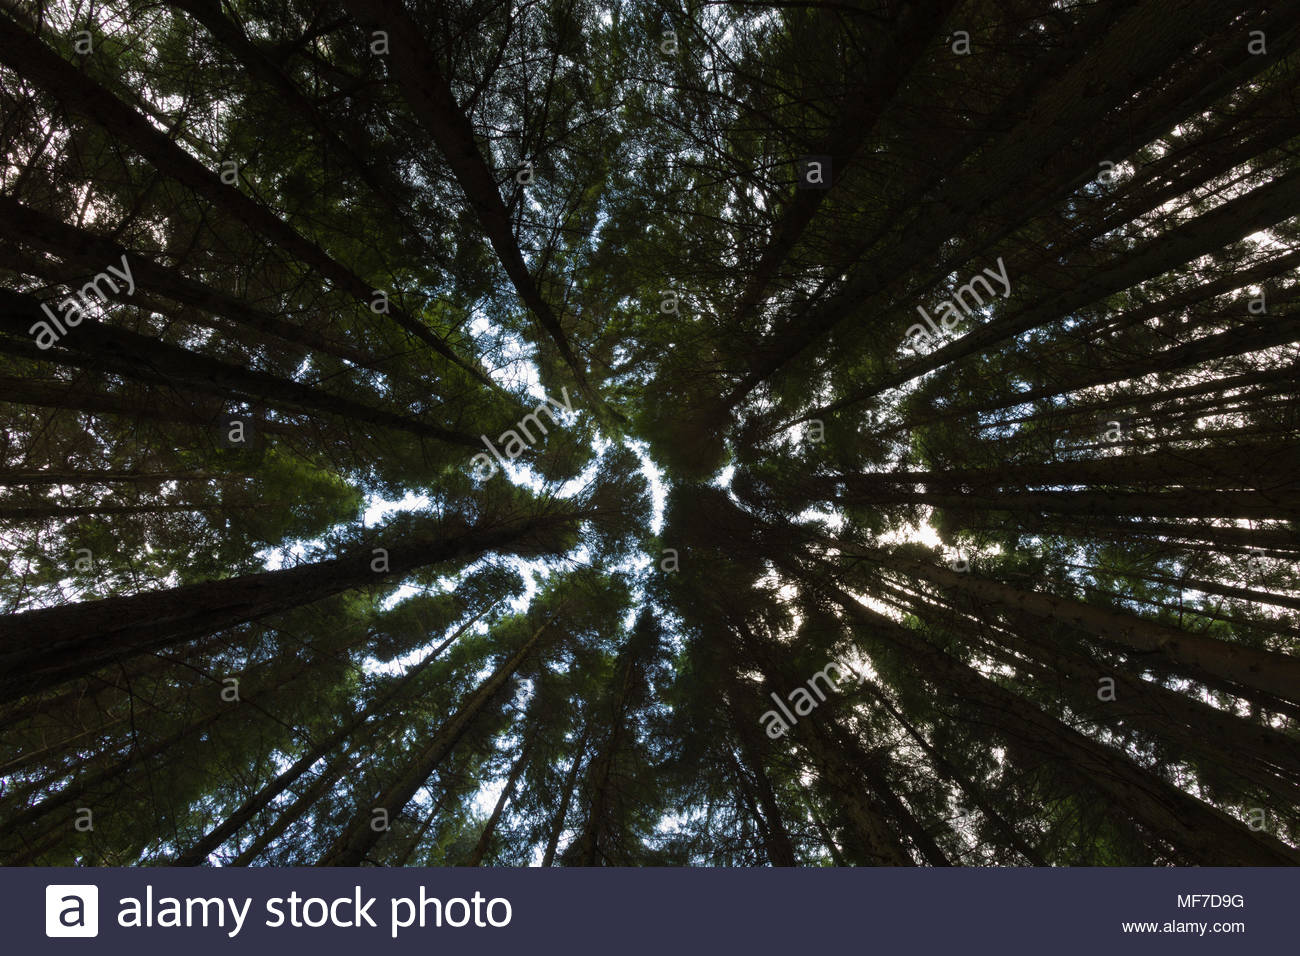 Tall pine trees fill the gaps searching for light - Stock Image